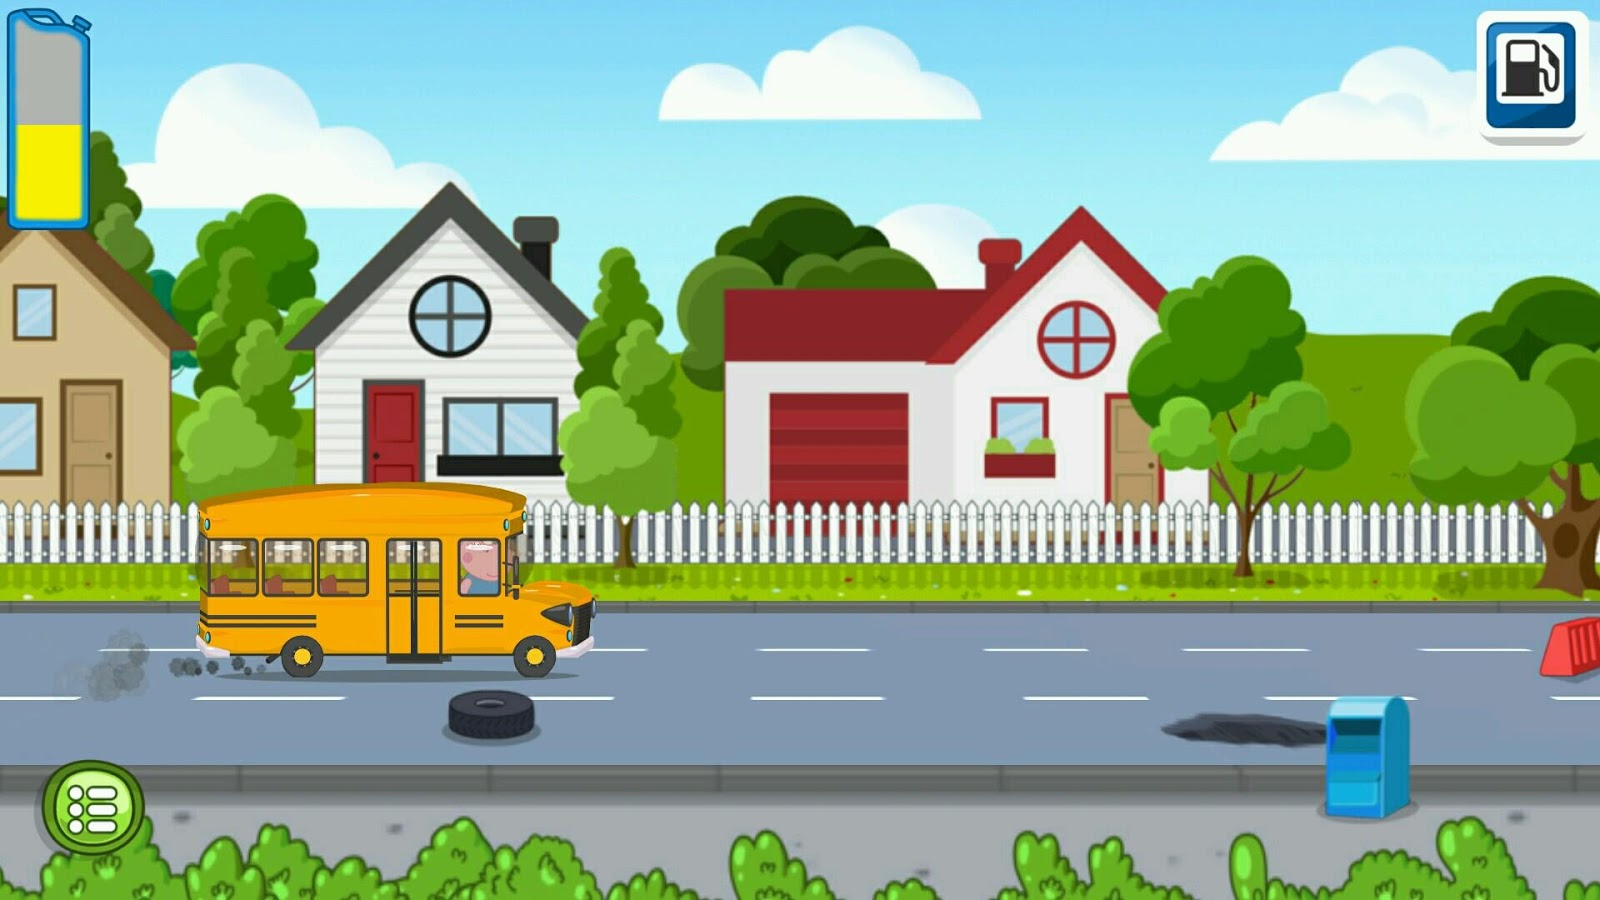 Kids School Bus Adventure Android Apps on Google Play